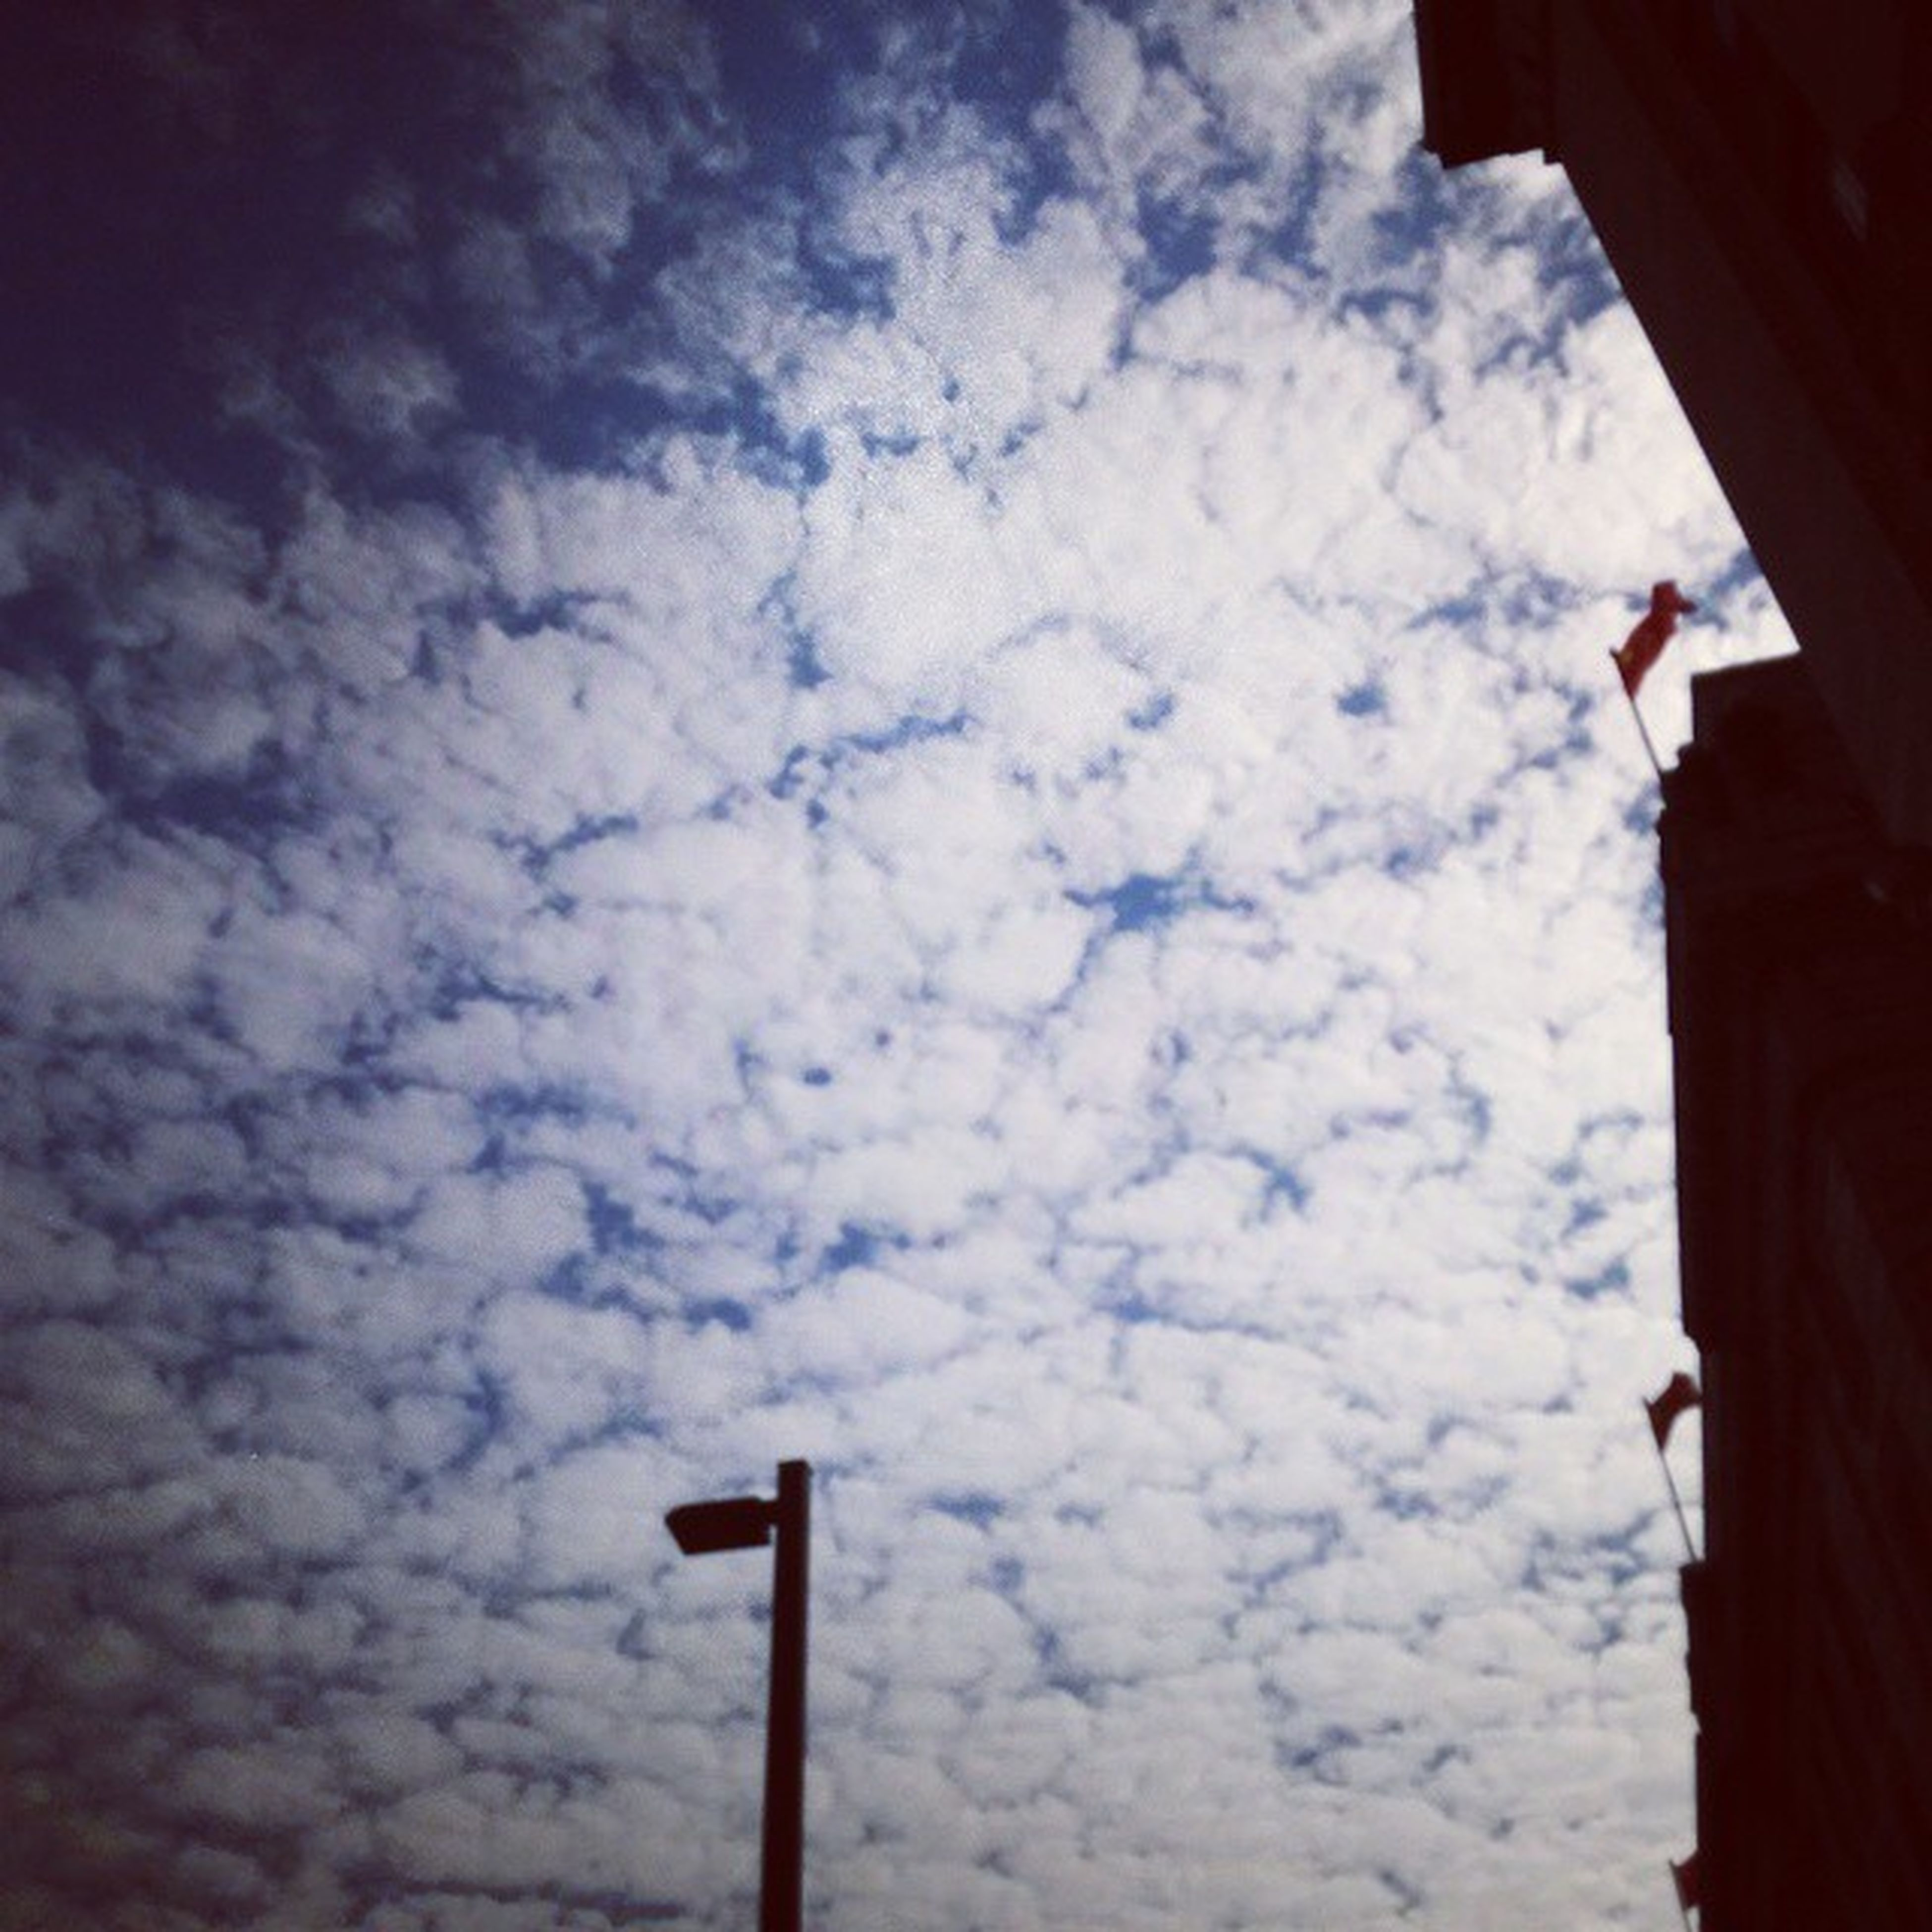 low angle view, sky, cloud - sky, built structure, building exterior, architecture, cloud, cloudy, flag, weather, outdoors, day, no people, silhouette, pole, high section, street light, nature, building, religion